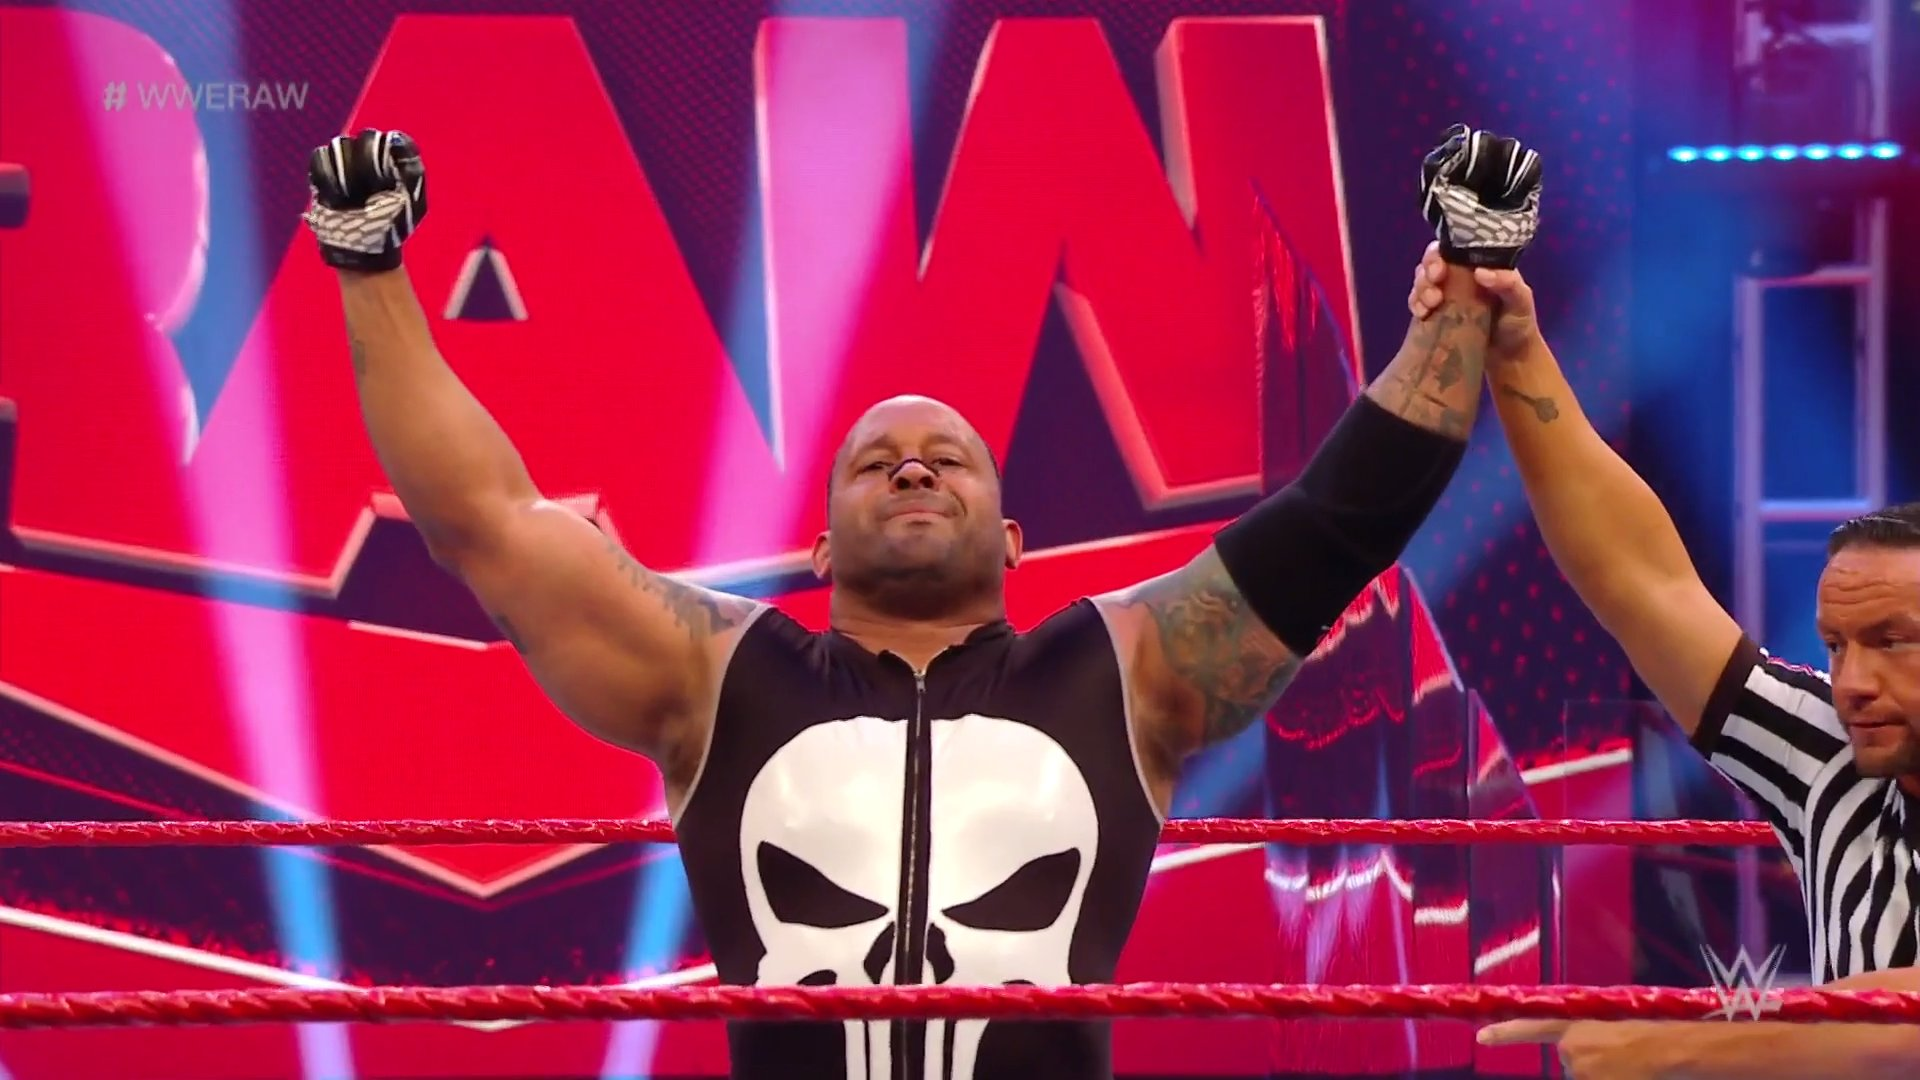 WWE RAW (June 29, 2020) | Live results | Contract signing for Extreme Rules 22